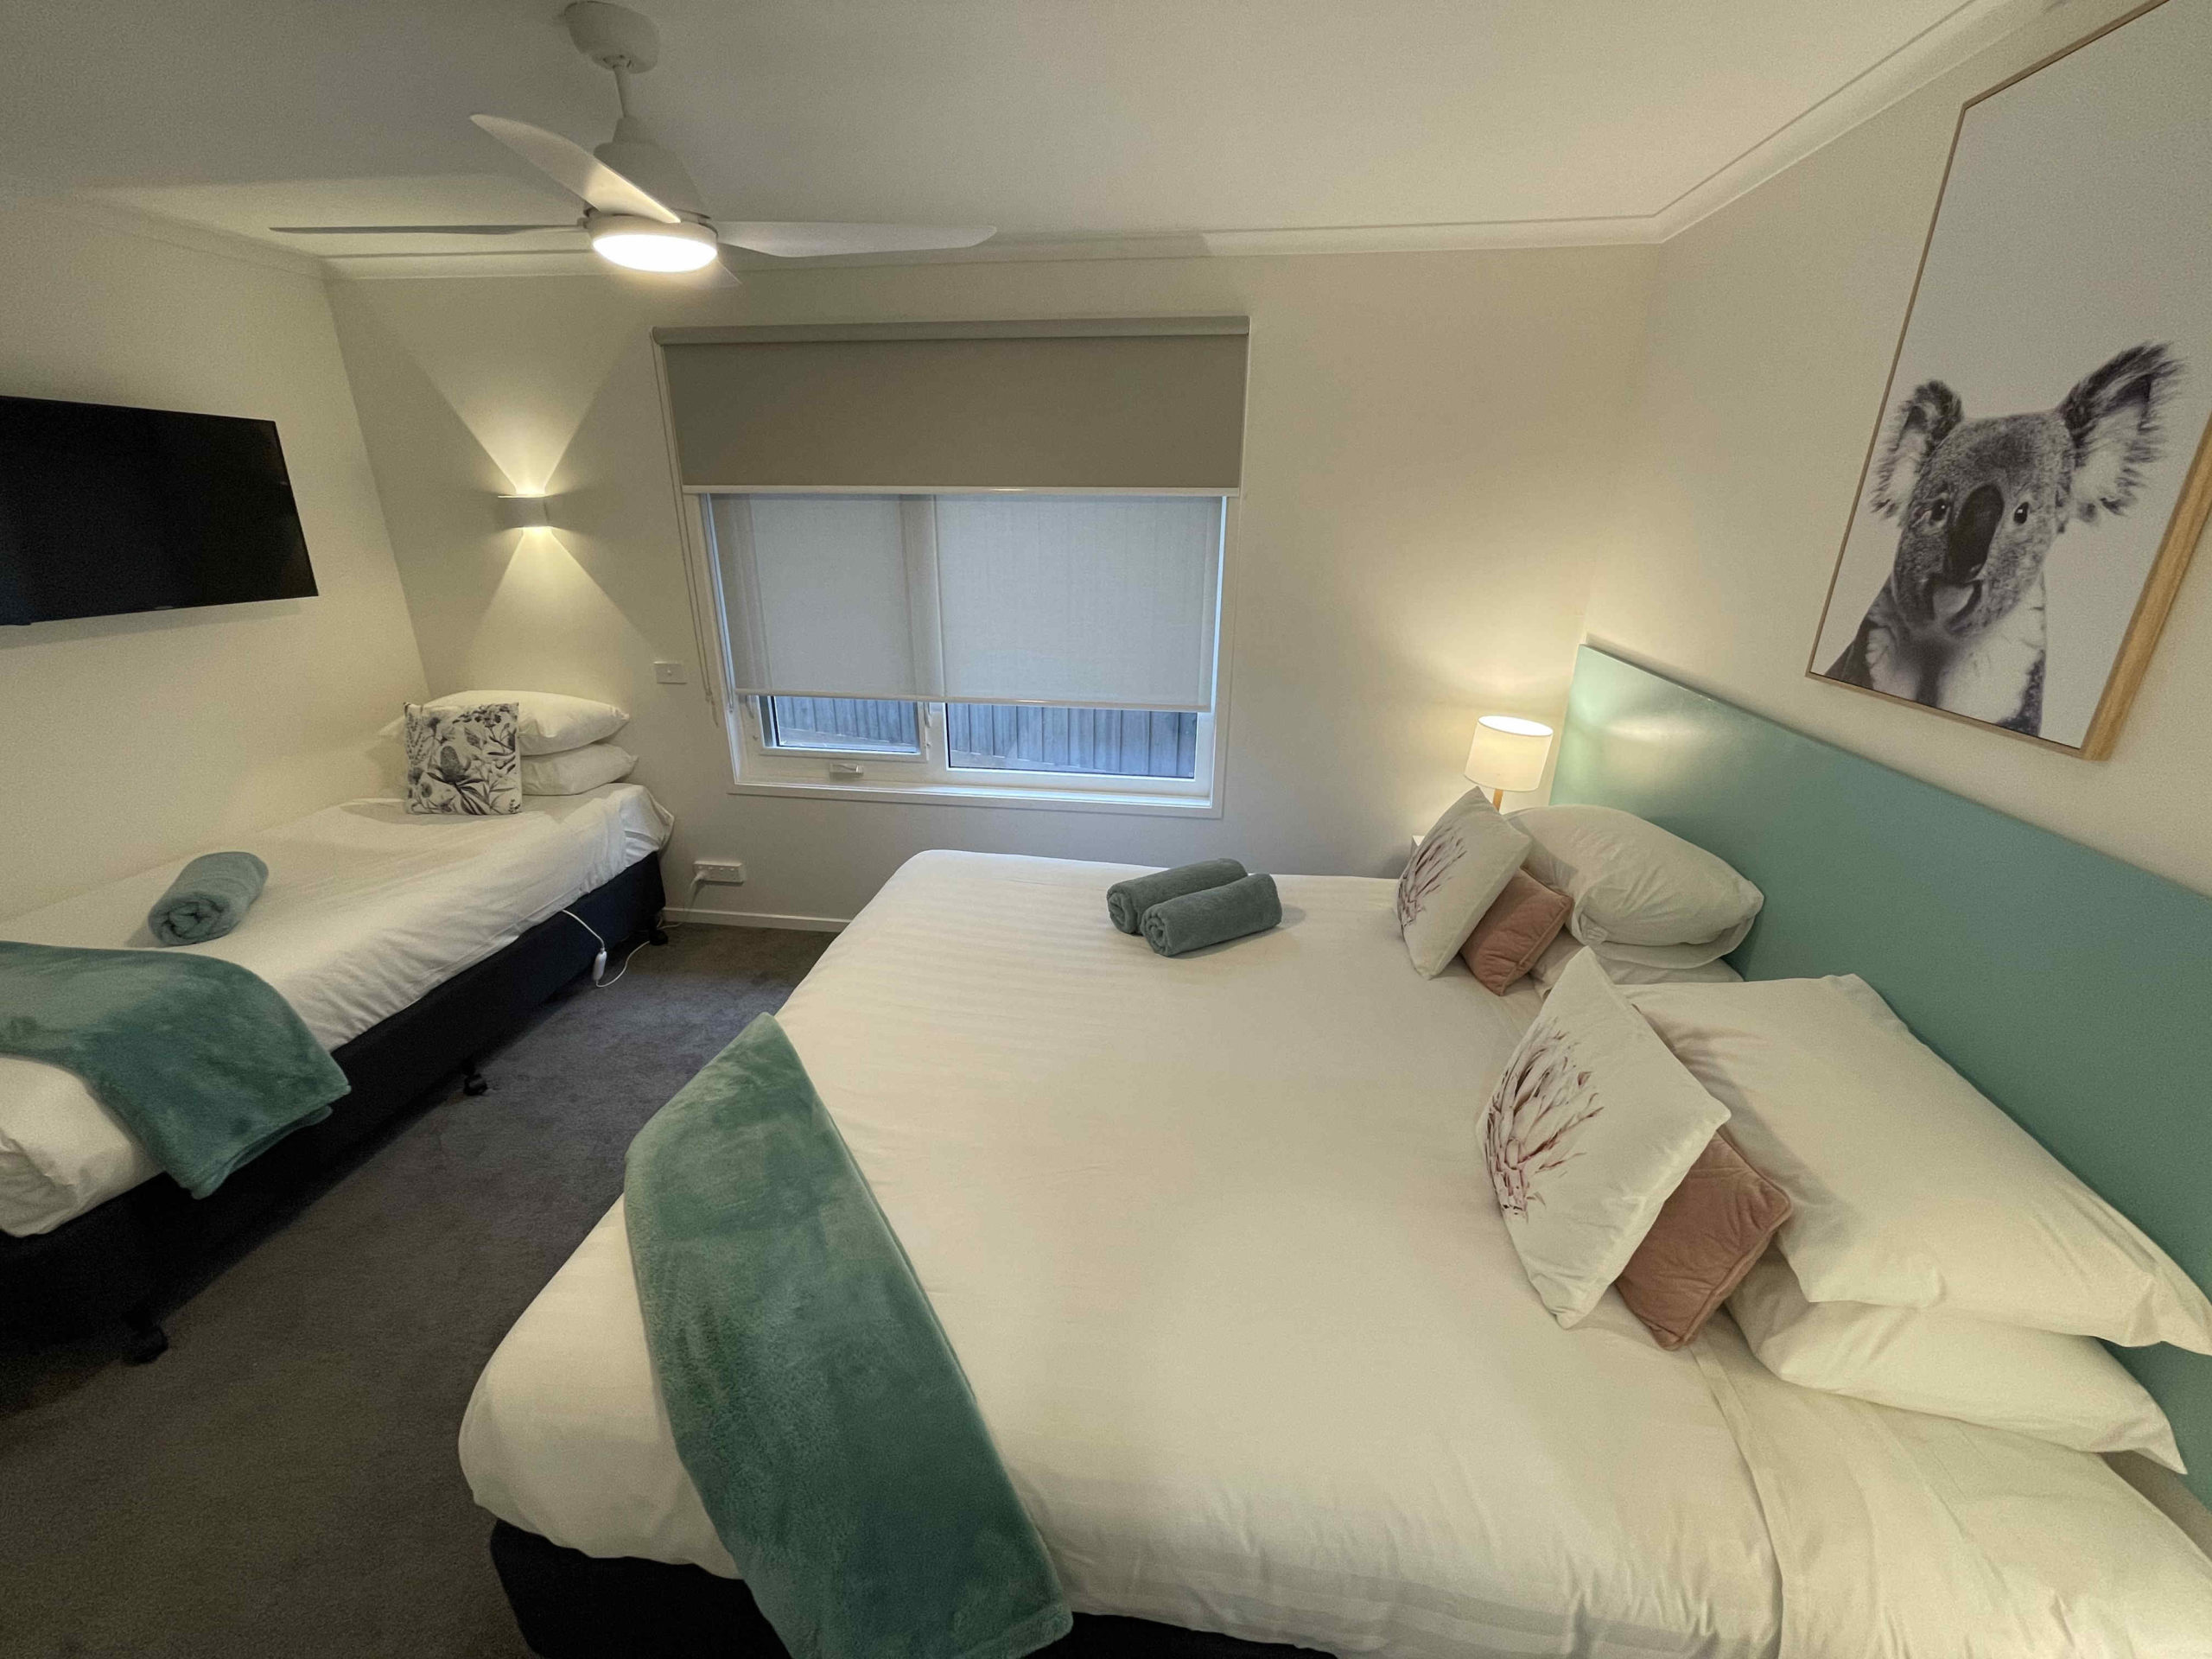 Bedroom of one bedroom apartment with one king bed and one single bed including tv